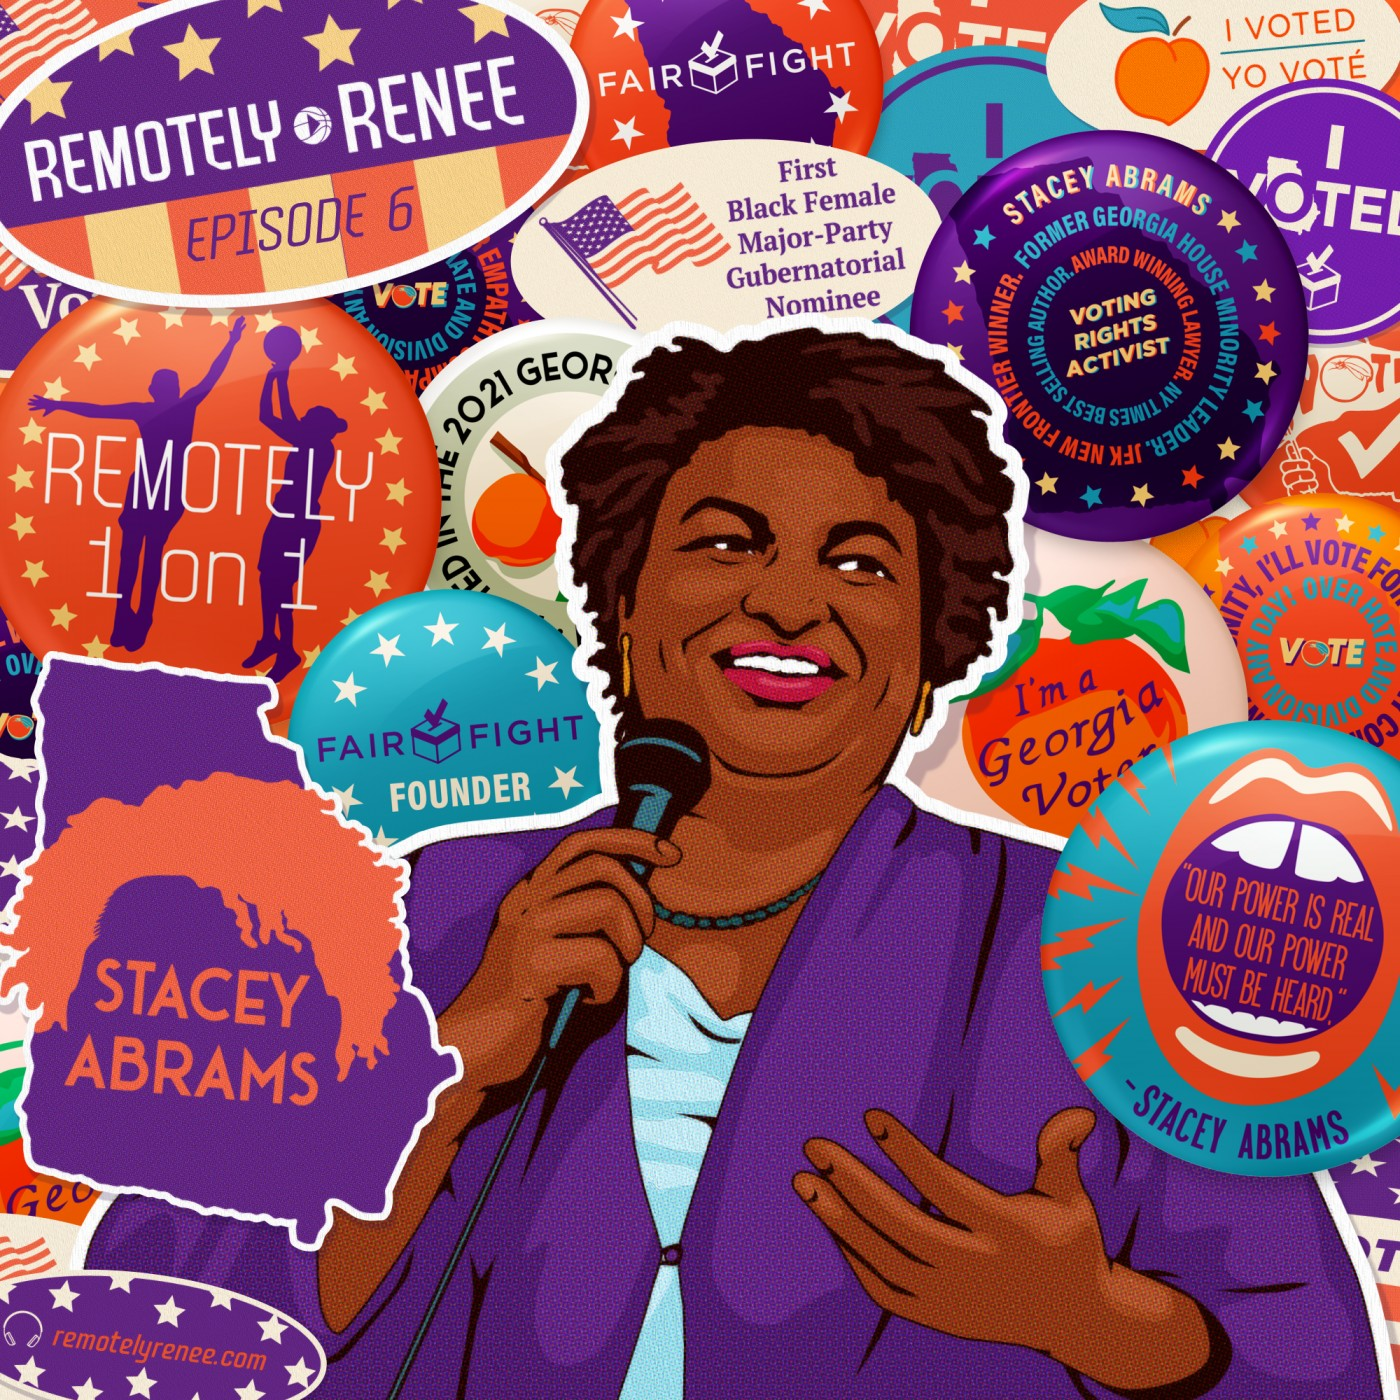 Ep 6.5 - Stacey Abrams - Founder of Fair Fight IRL